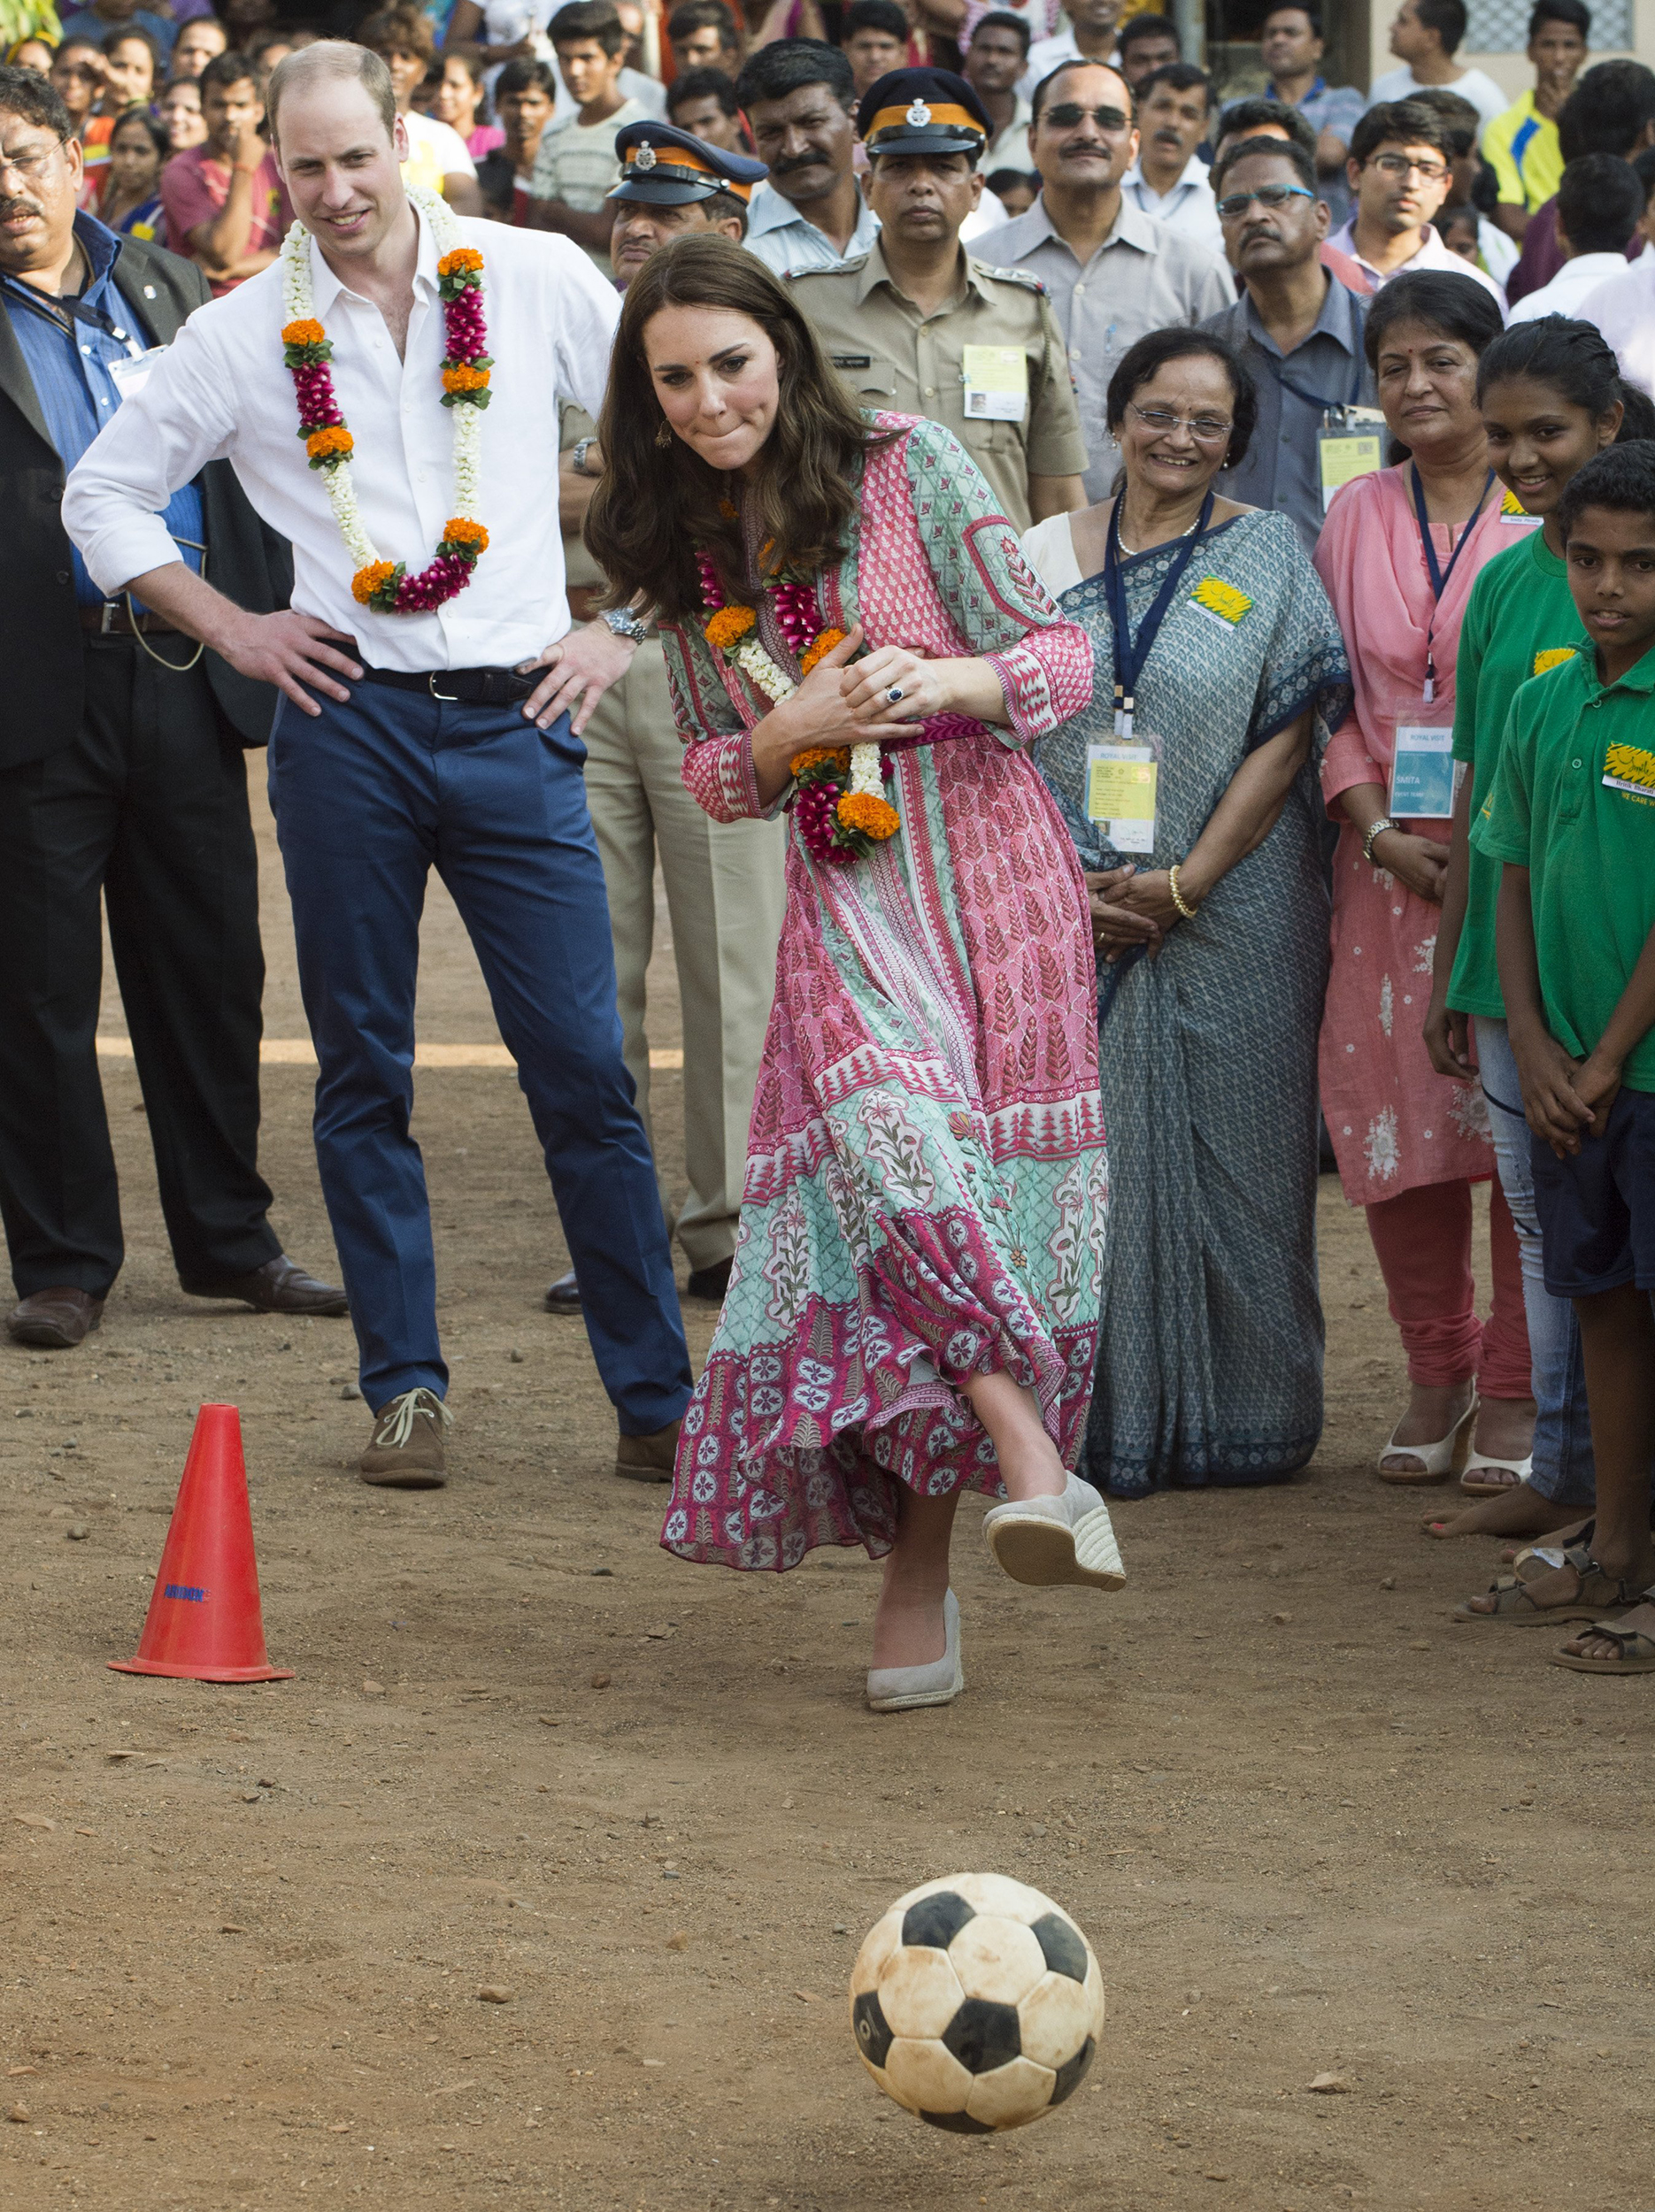 Prince William and Catherine play football games during a visit to the Banganga Water tank, where they met representatives of SMILE in Mumbai, India on April 10, 2016.